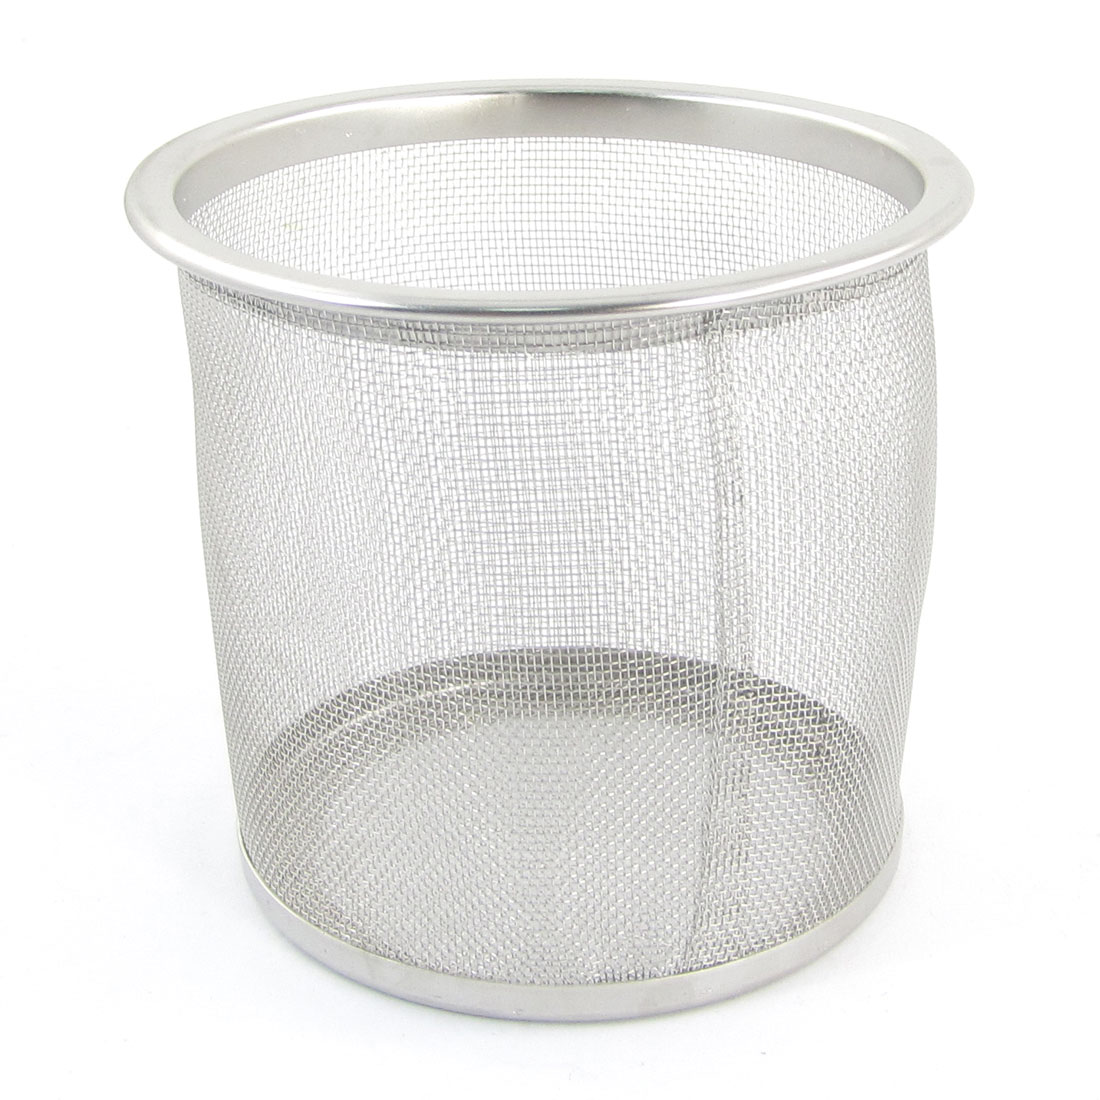 73mm Outer Dia Stainless Steel Mesh Tea Leaf Stainer Teapot Filter